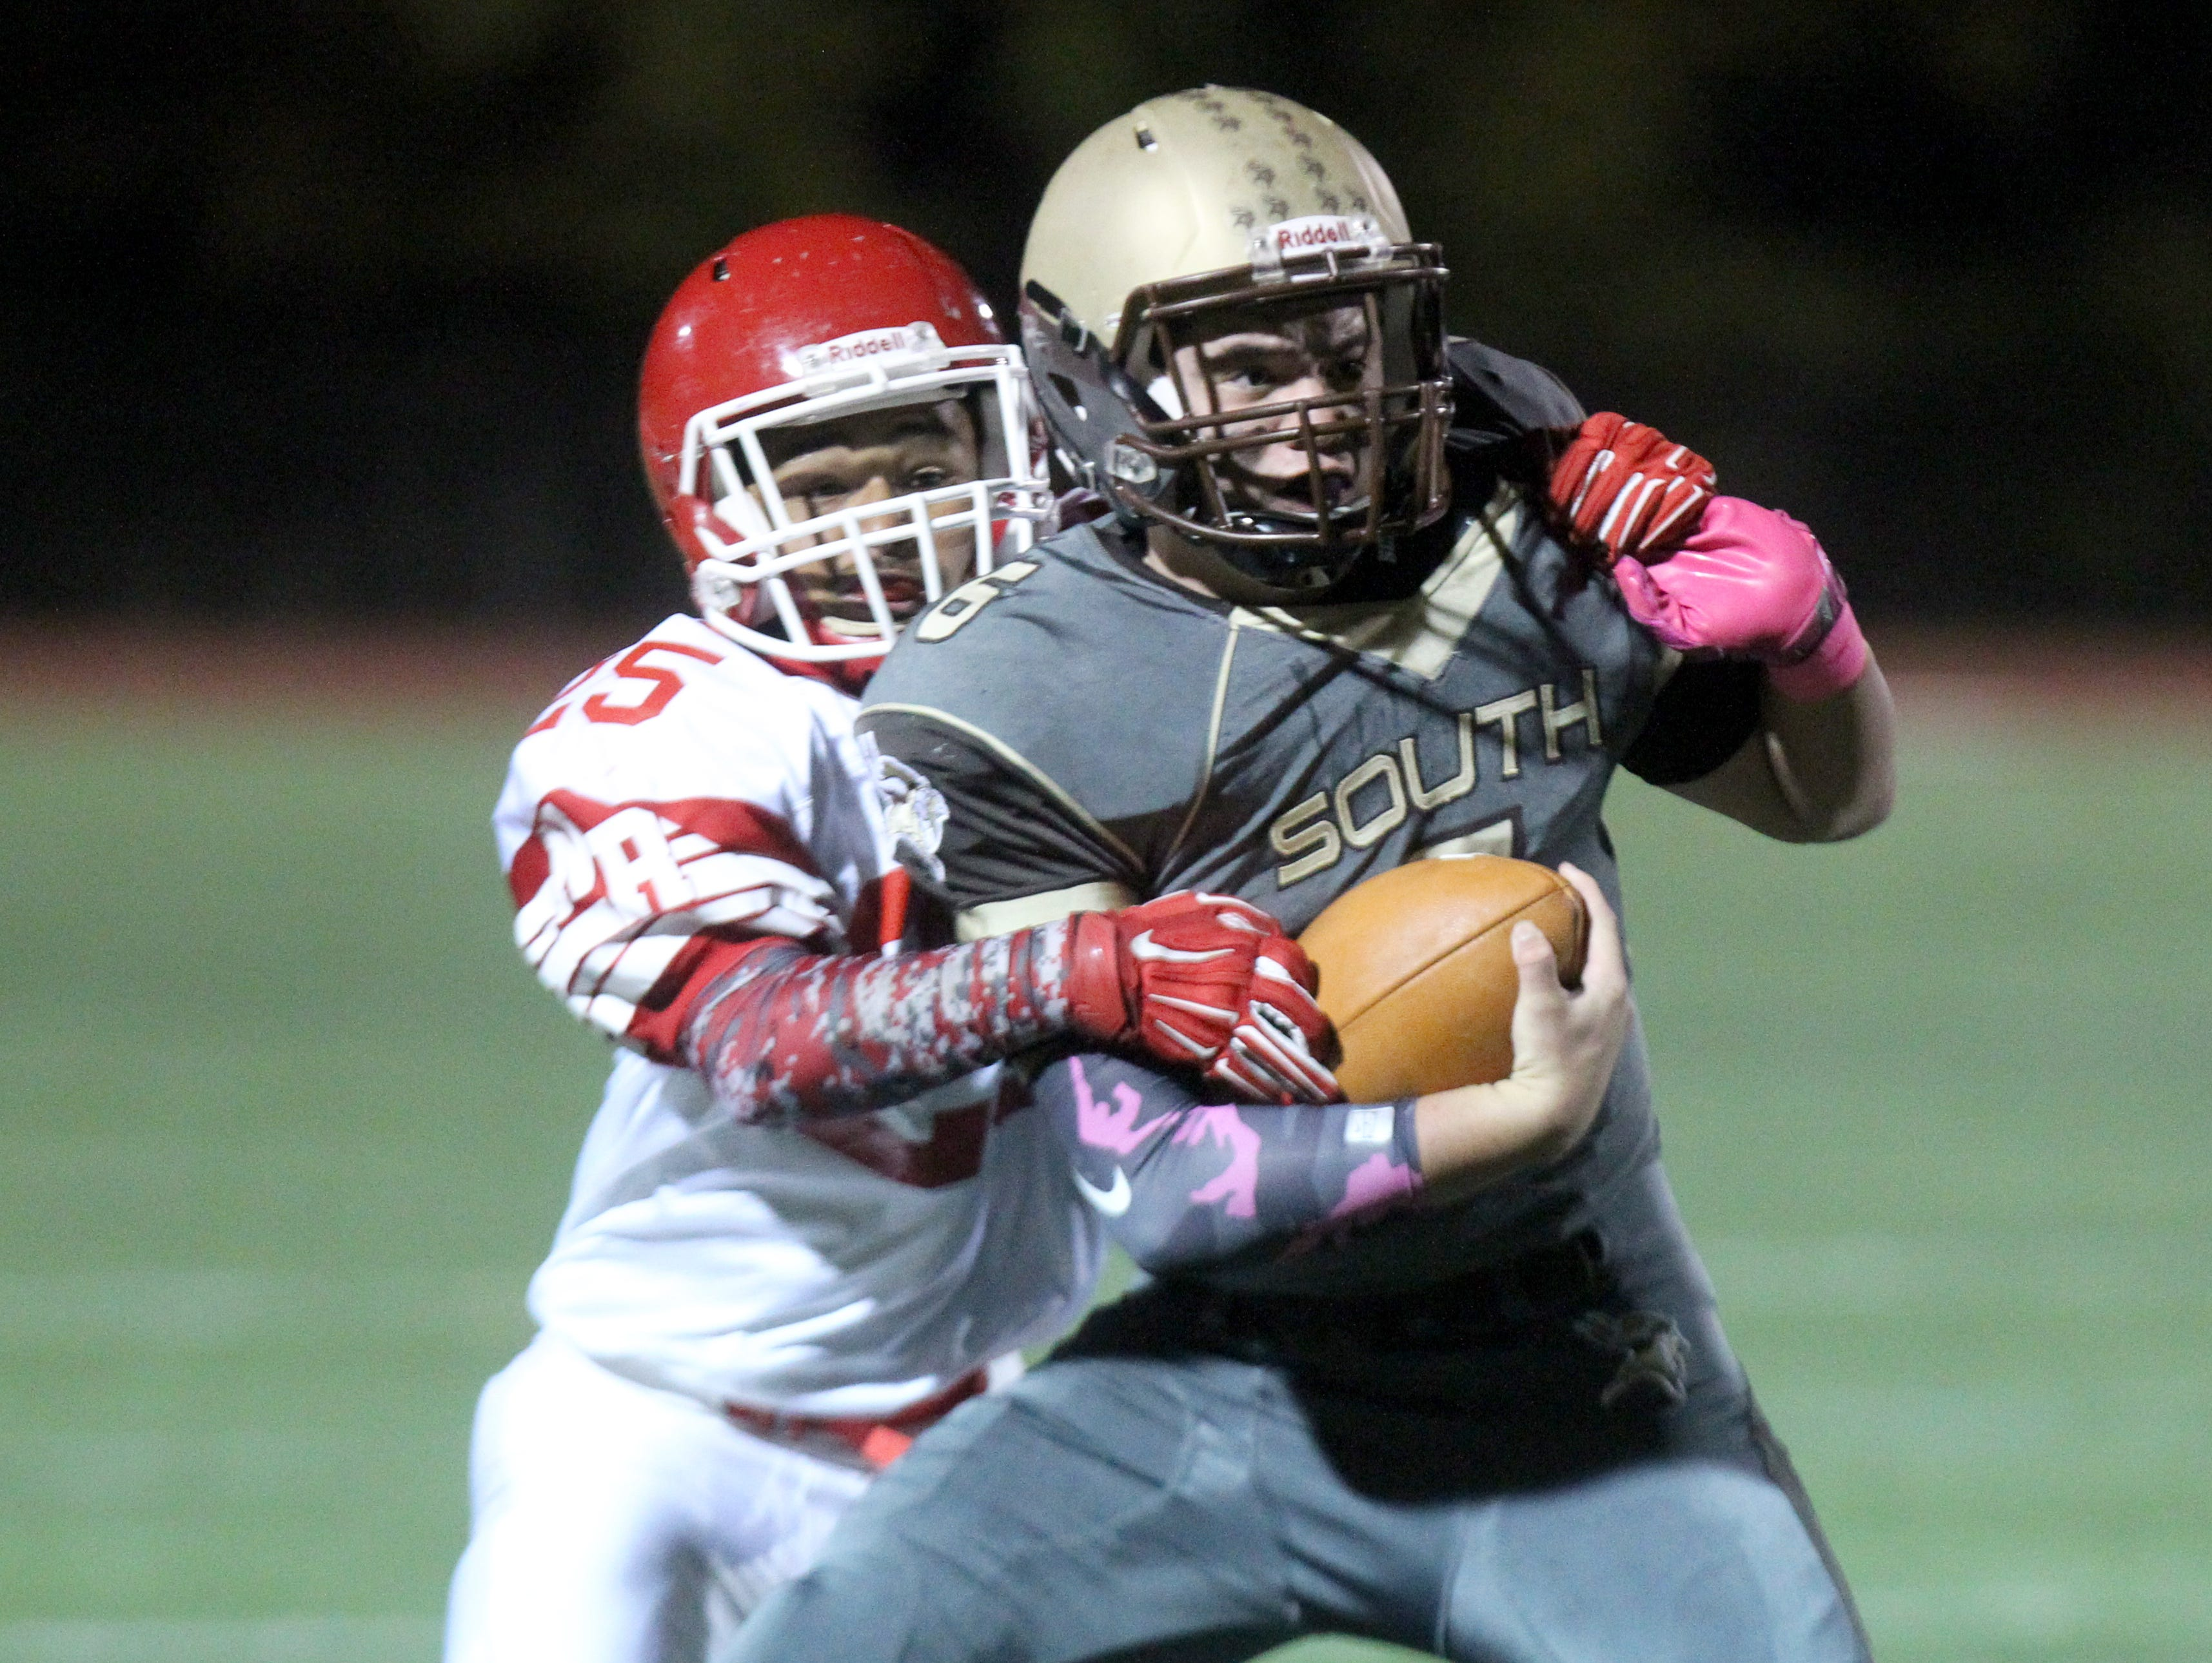 Clarkstown South's Matt Jung is tackled by North Rockland's Michael Cintron during their Class AA qualifying round game at Clarkstown South Oct. 16, 2015.